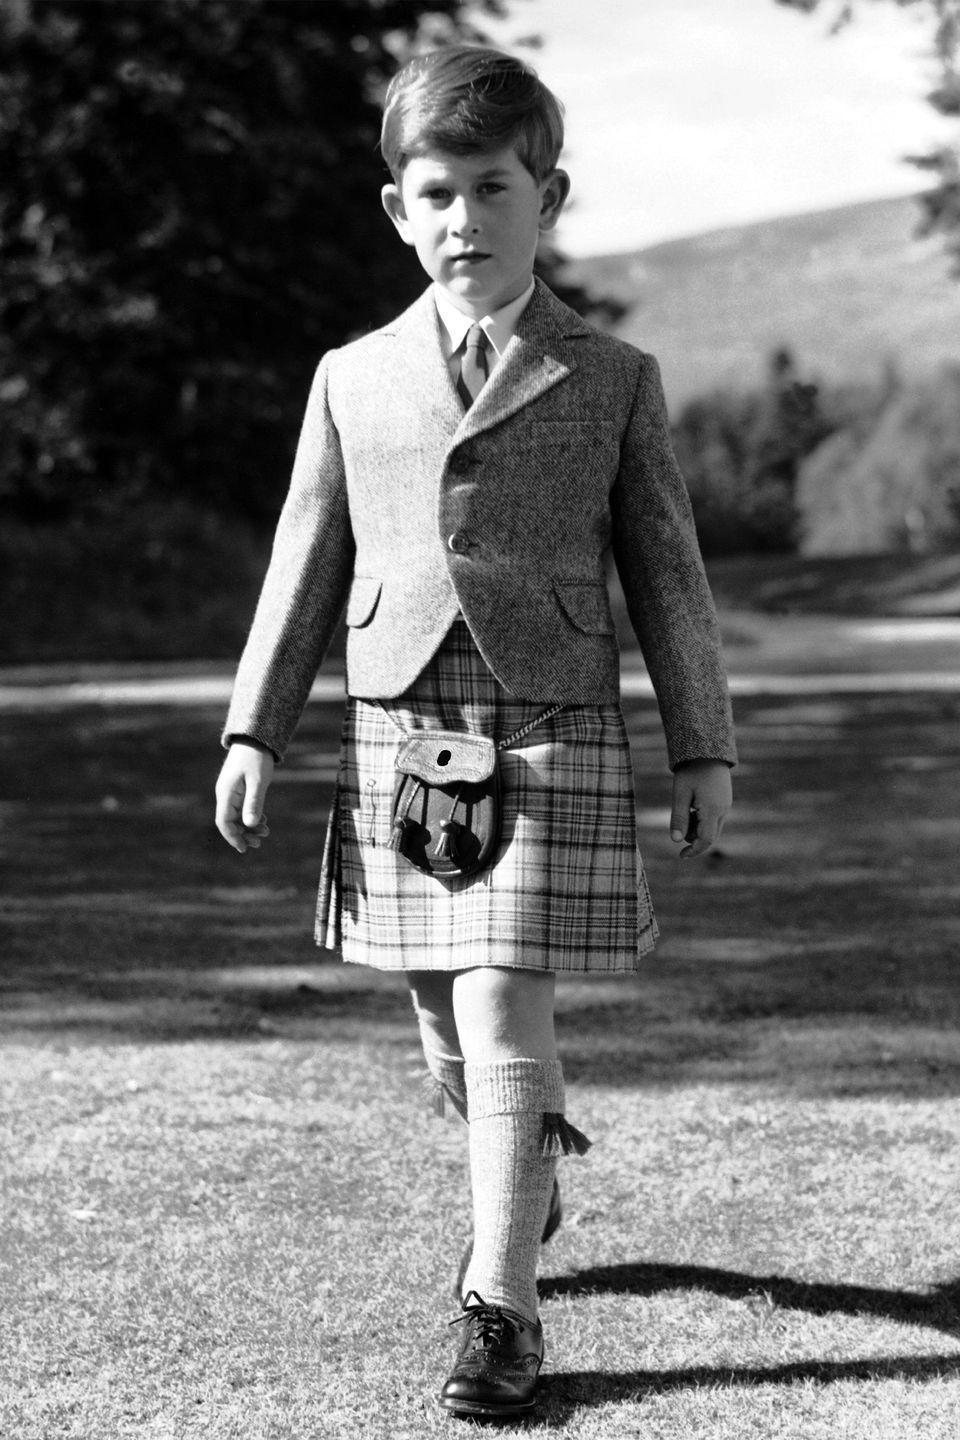 <p>Prince Charles in a kilt on the grounds of the Balmoral Estate.</p>